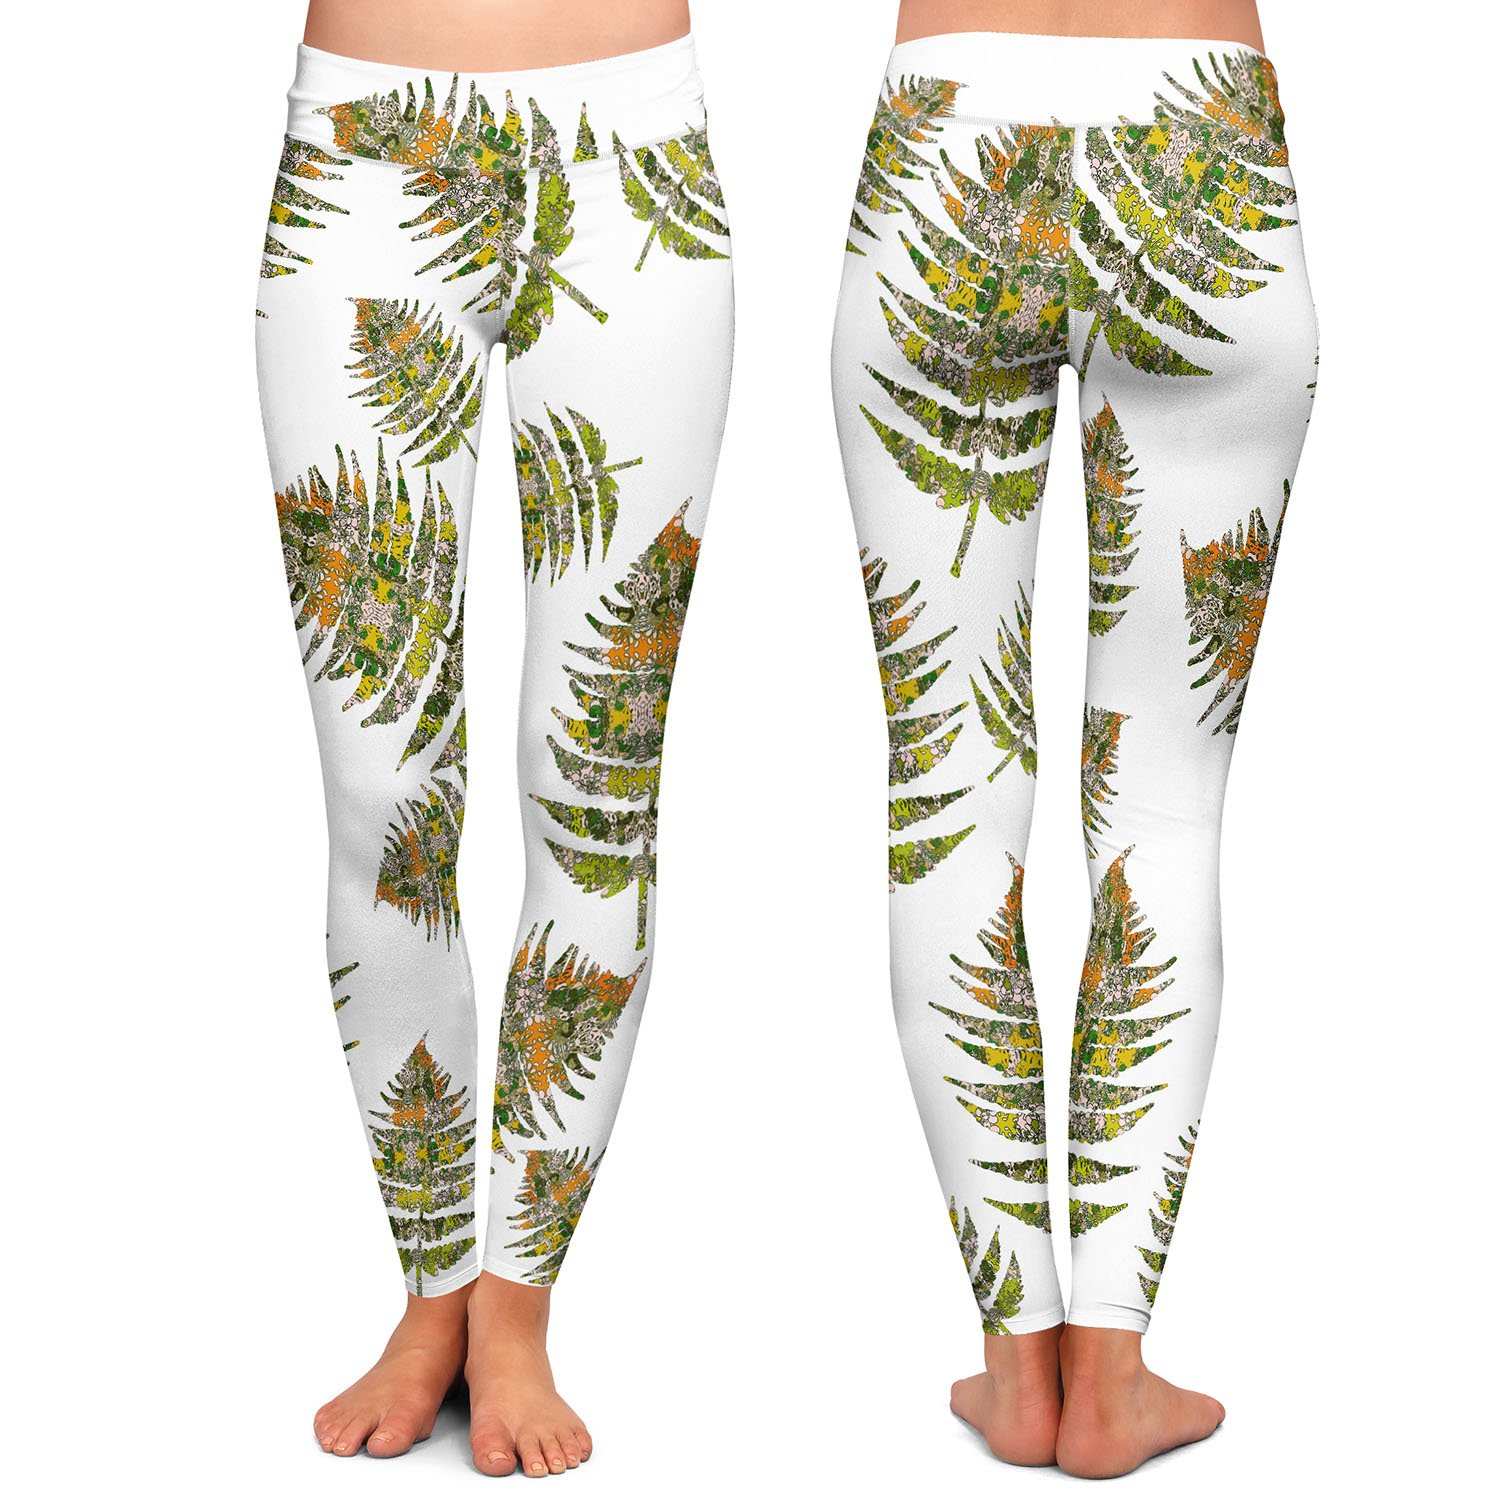 Fern 2 Greens Athletic Yoga Leggings from DiaNoche Designs by Susie Kunzelman